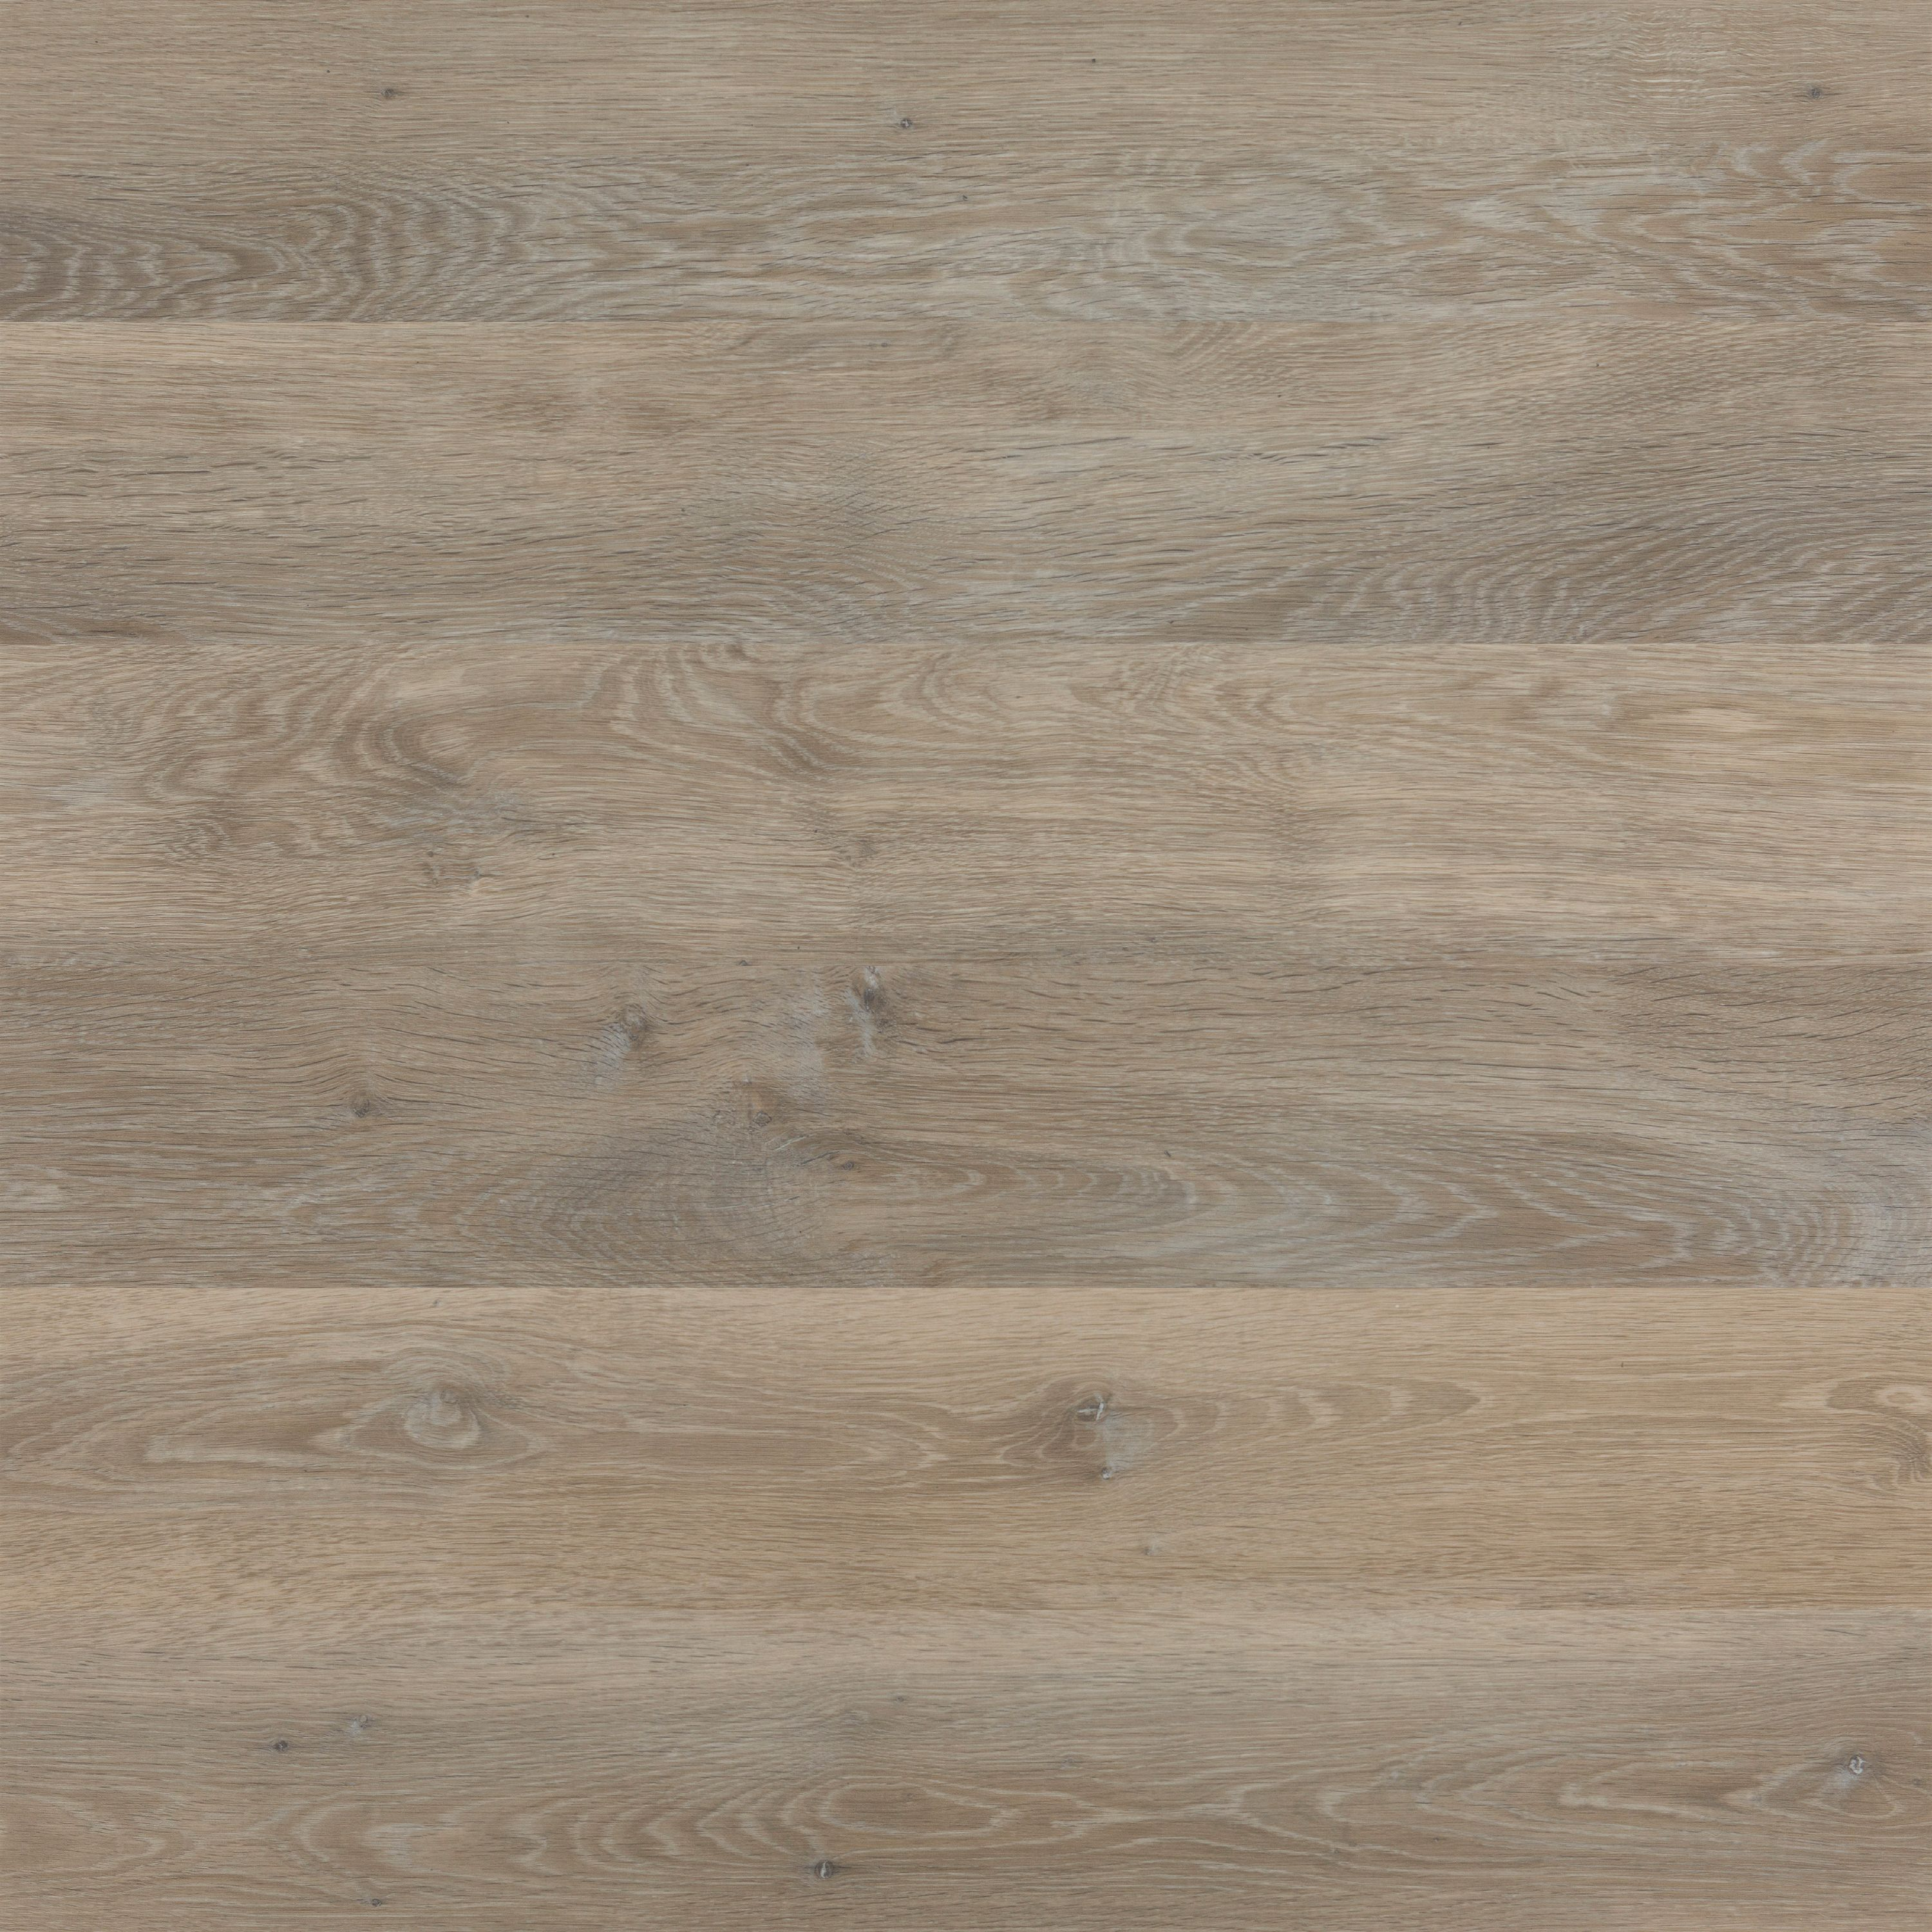 Urban Surfaces City Heights: 8699 Yosemite 15-planks 7-in x 48-in Luxury Vinyl Glue Down Plank (37 sq. ft. / case)